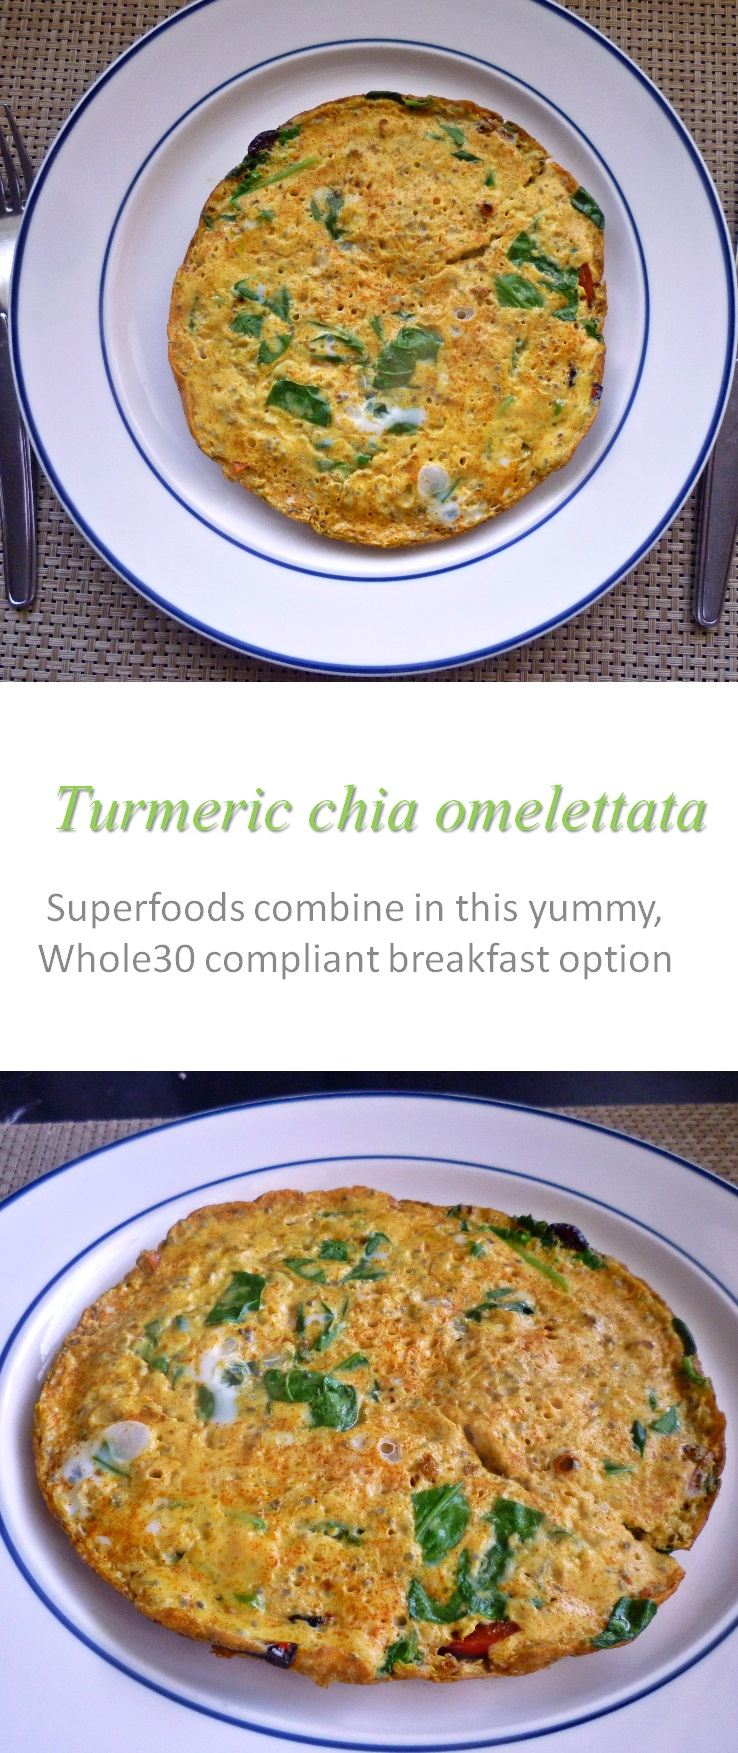 Putting two amazing ingredients into your omelette just made this turmeric chia omelettata your new favorite breakfast! #omelette